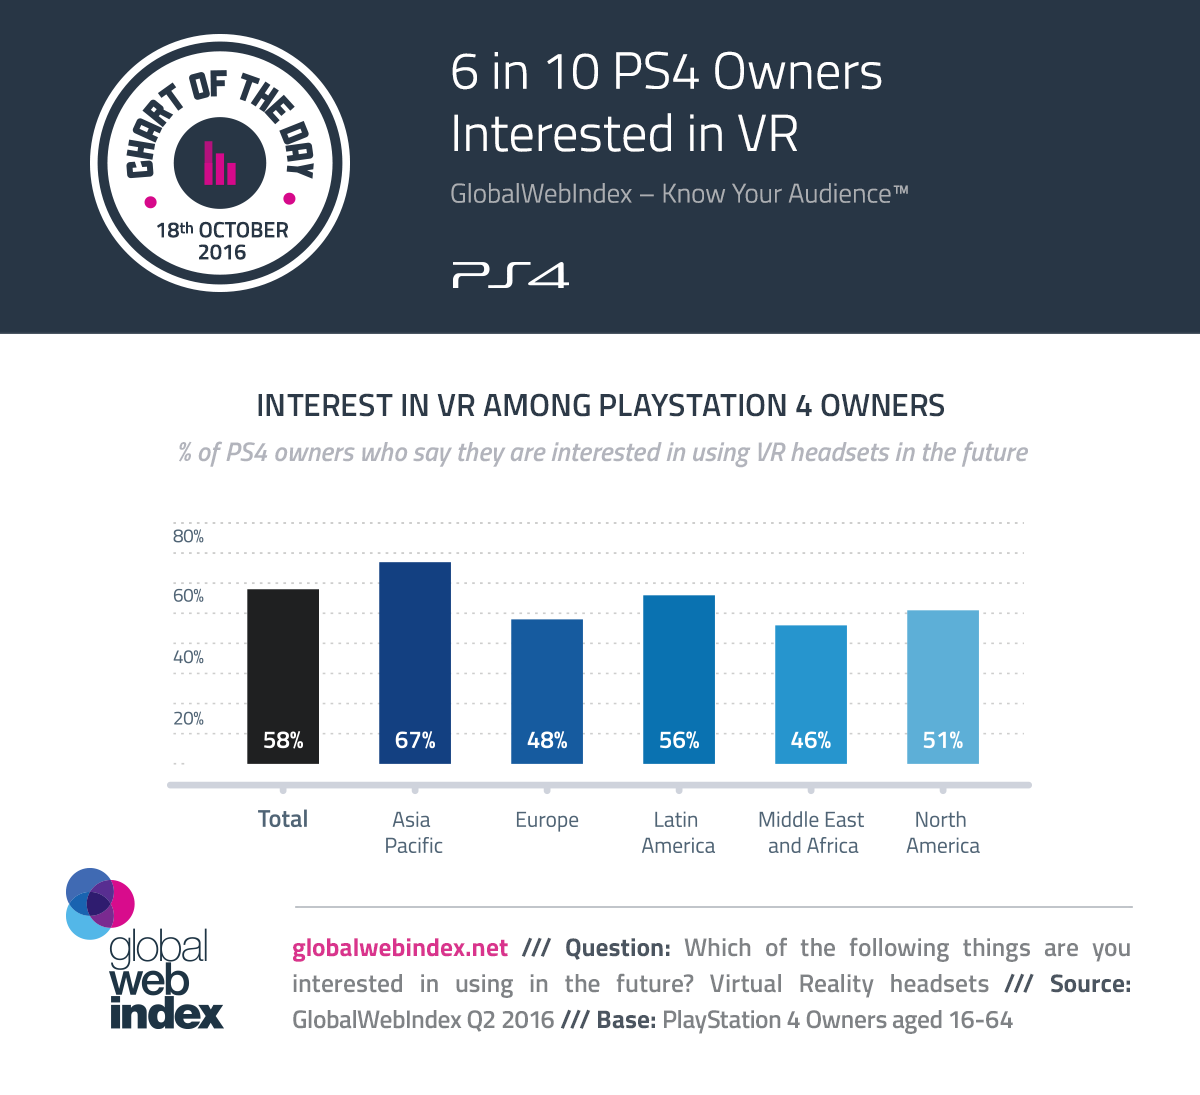 6 in 10 PS4 Owners Interested in VR